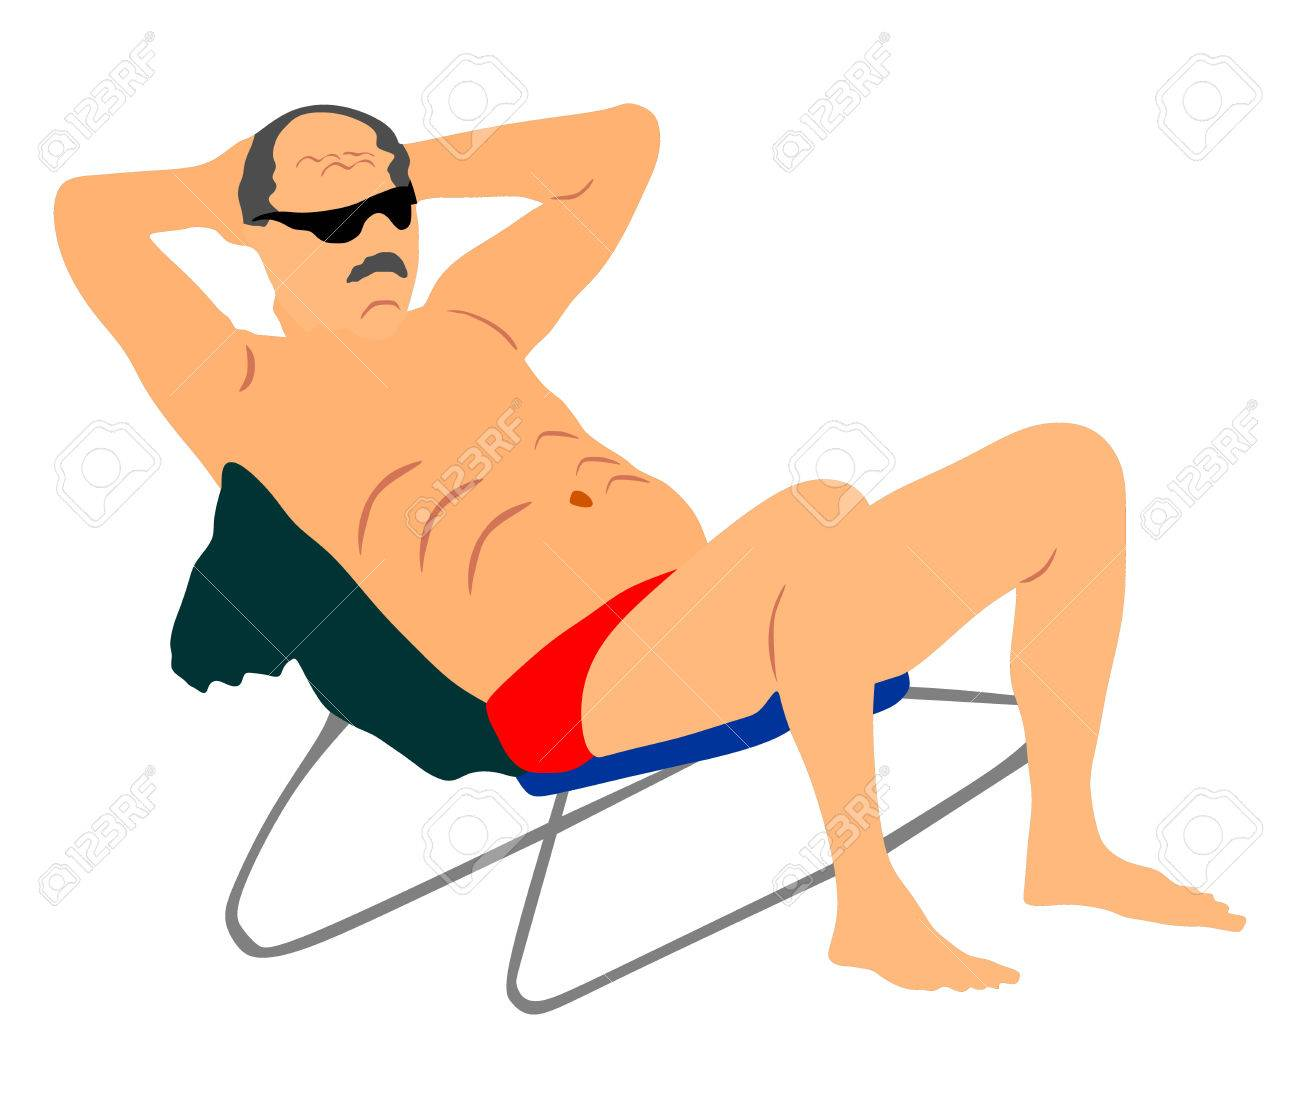 retired old man on vacation sitting in beach chair, vector